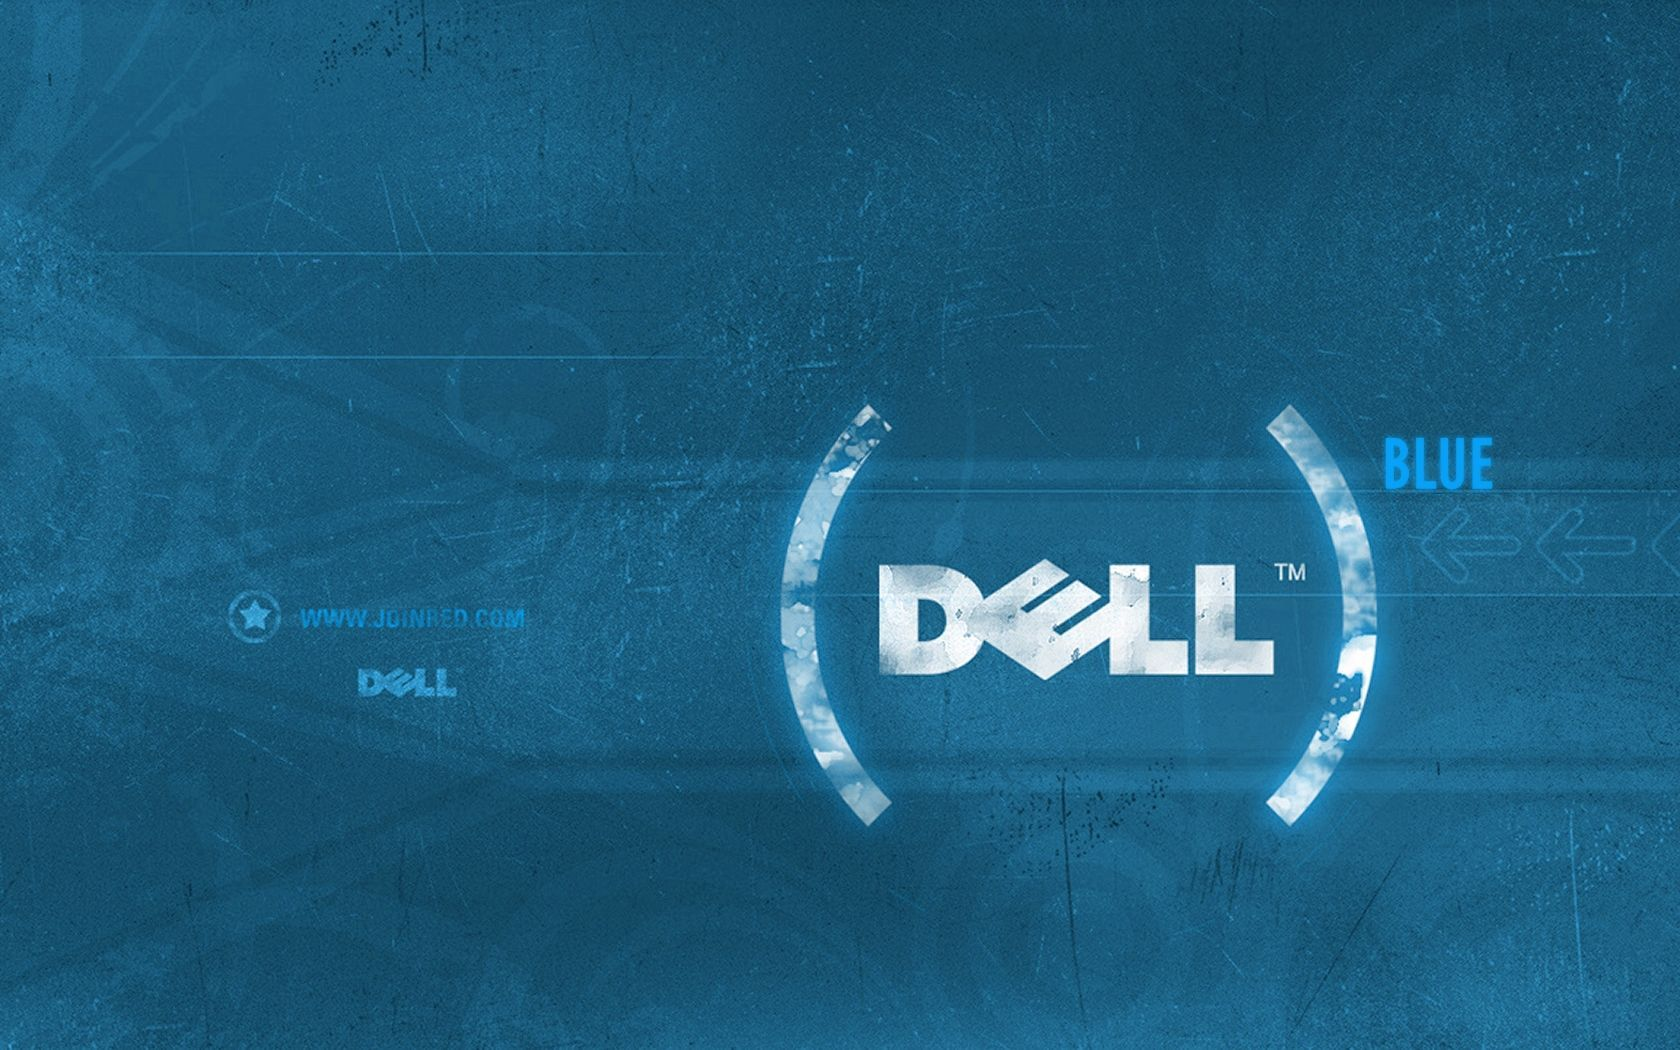 1680x1050 HD Dell Backgrounds Dell Wallpaper Images For Windows ...